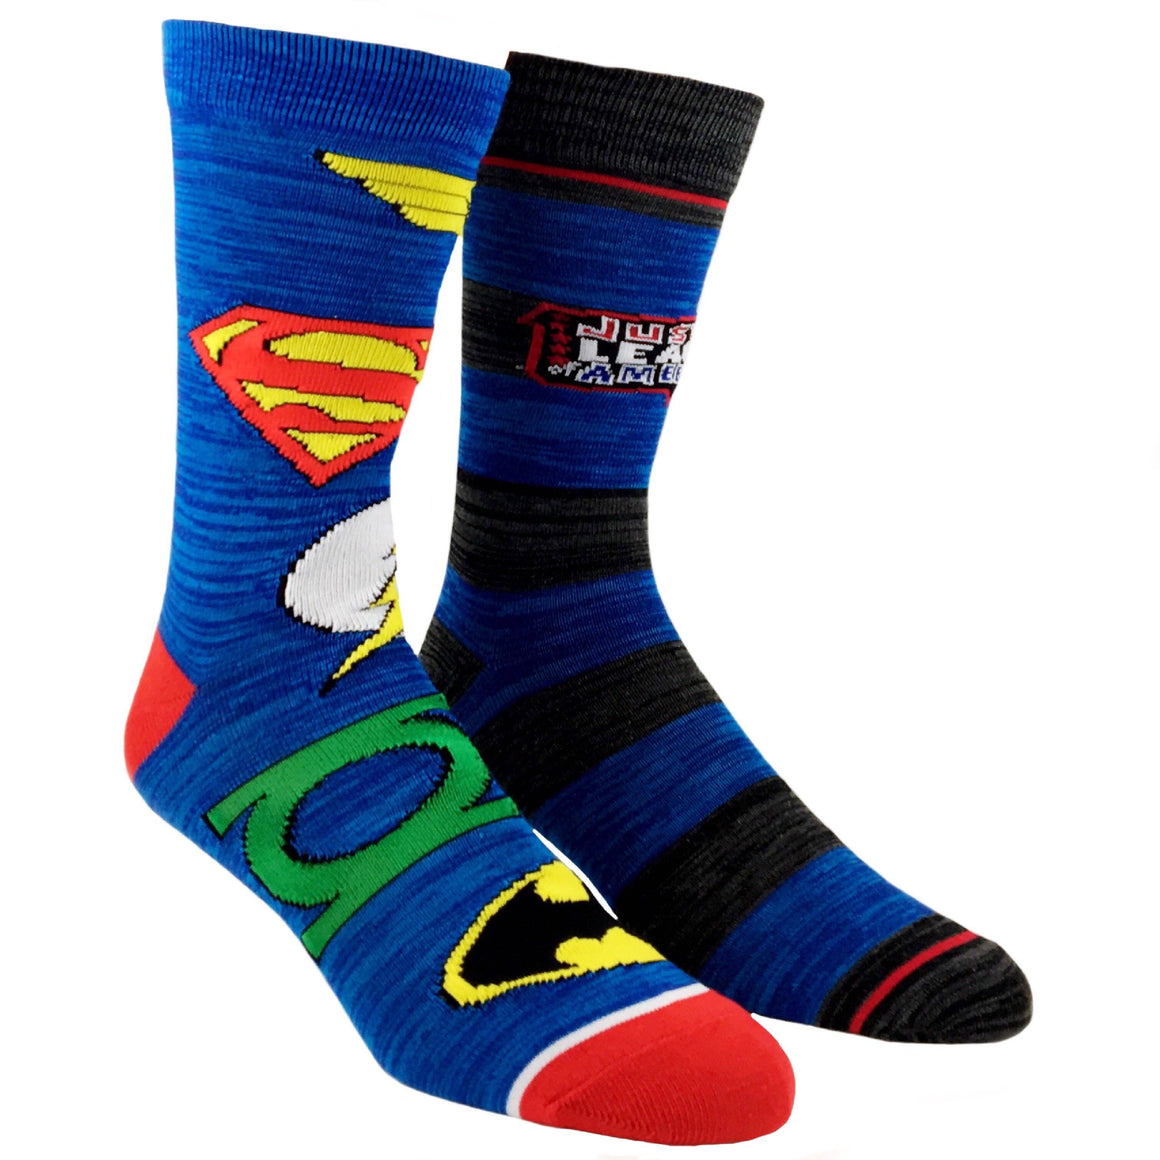 2 Pair Pack DC Comics Justice League of America Superhero Socks - The Sock Spot